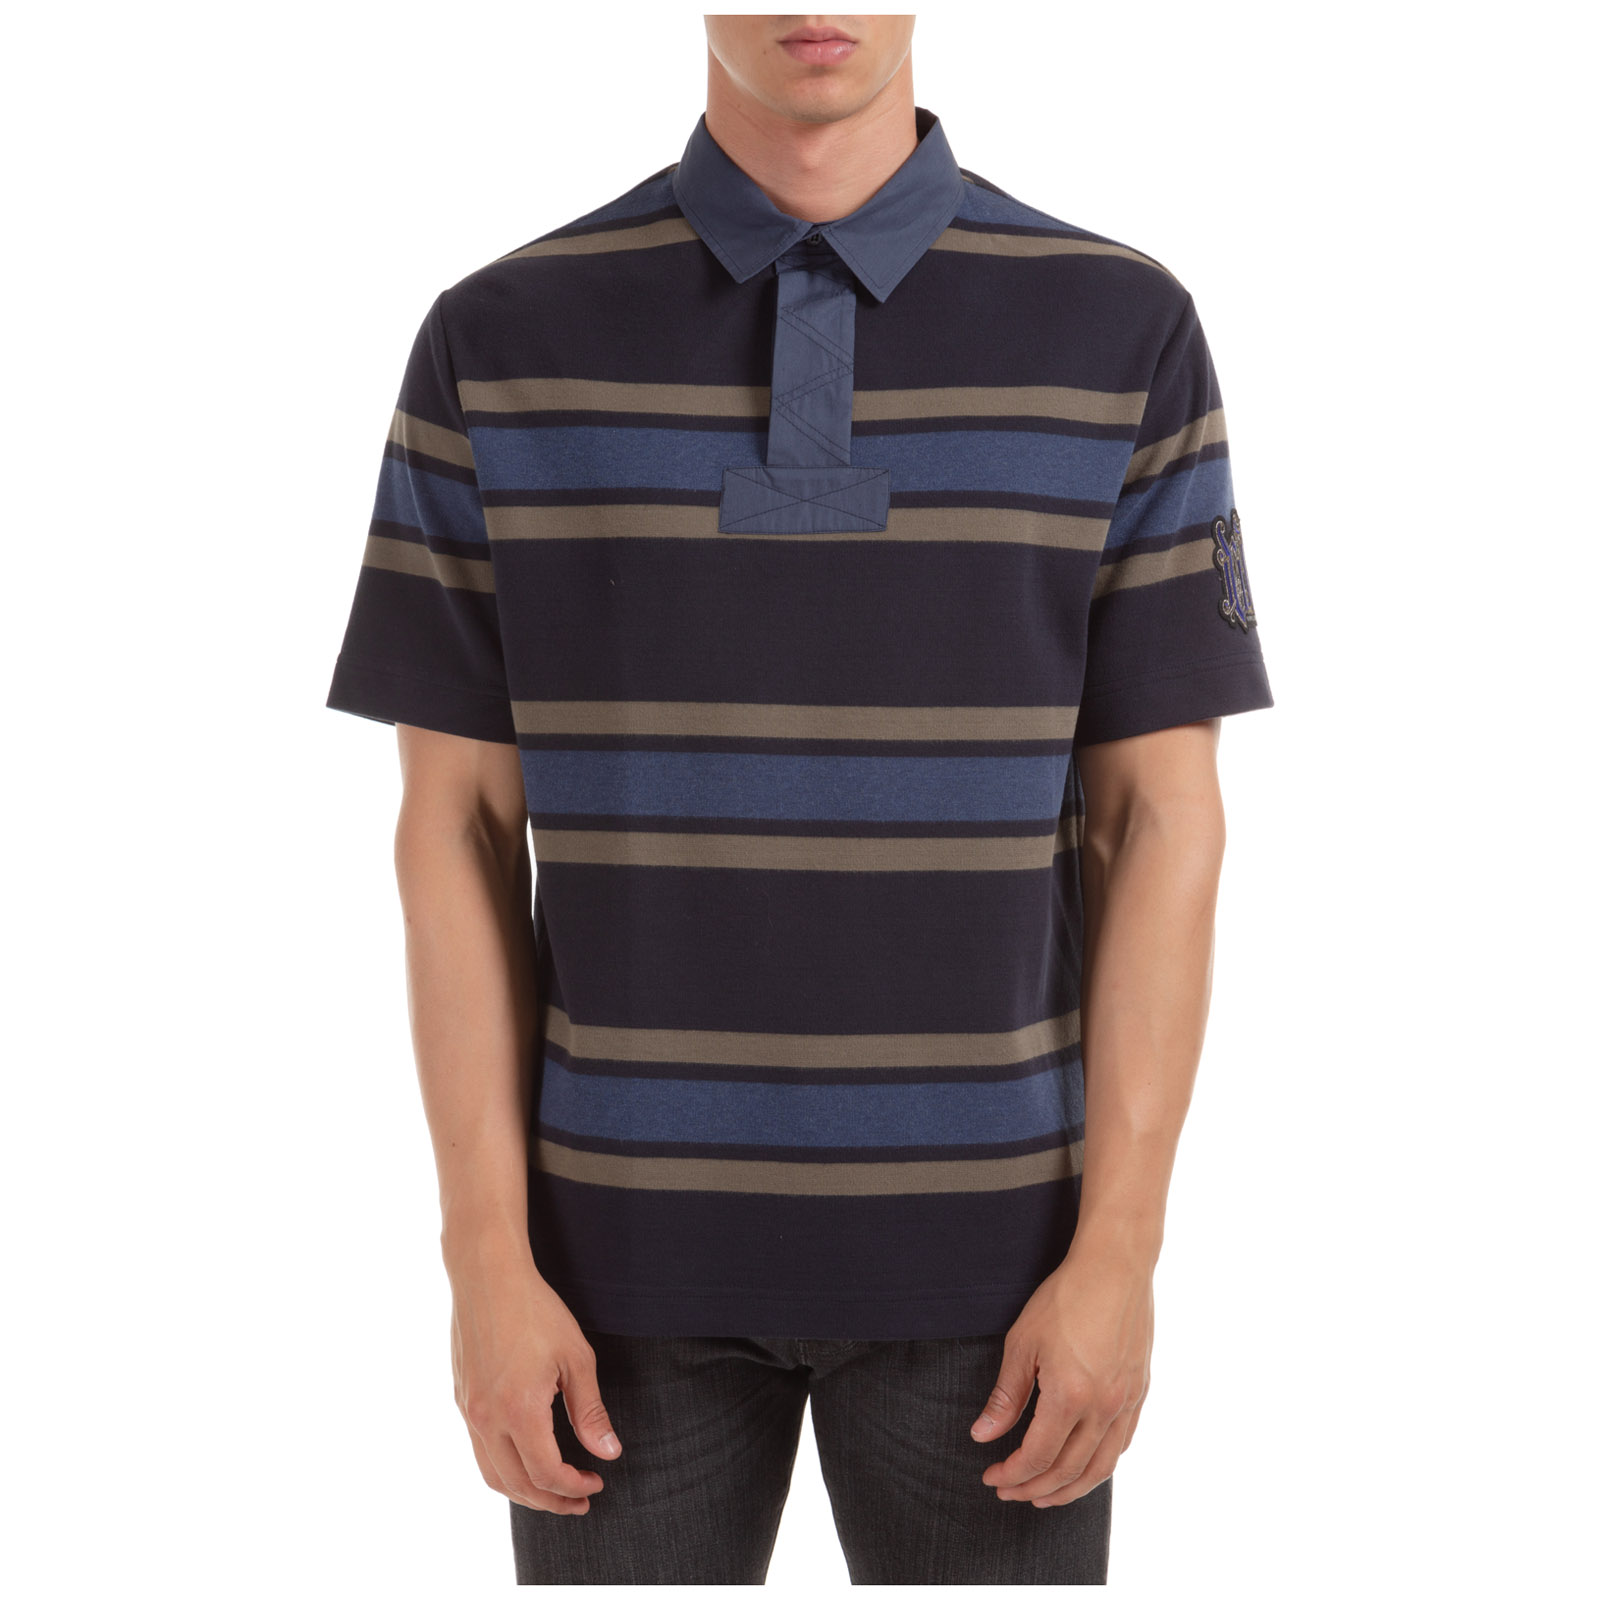 T Courtes Homme Col Manches Polo Shirt 6f7ygb